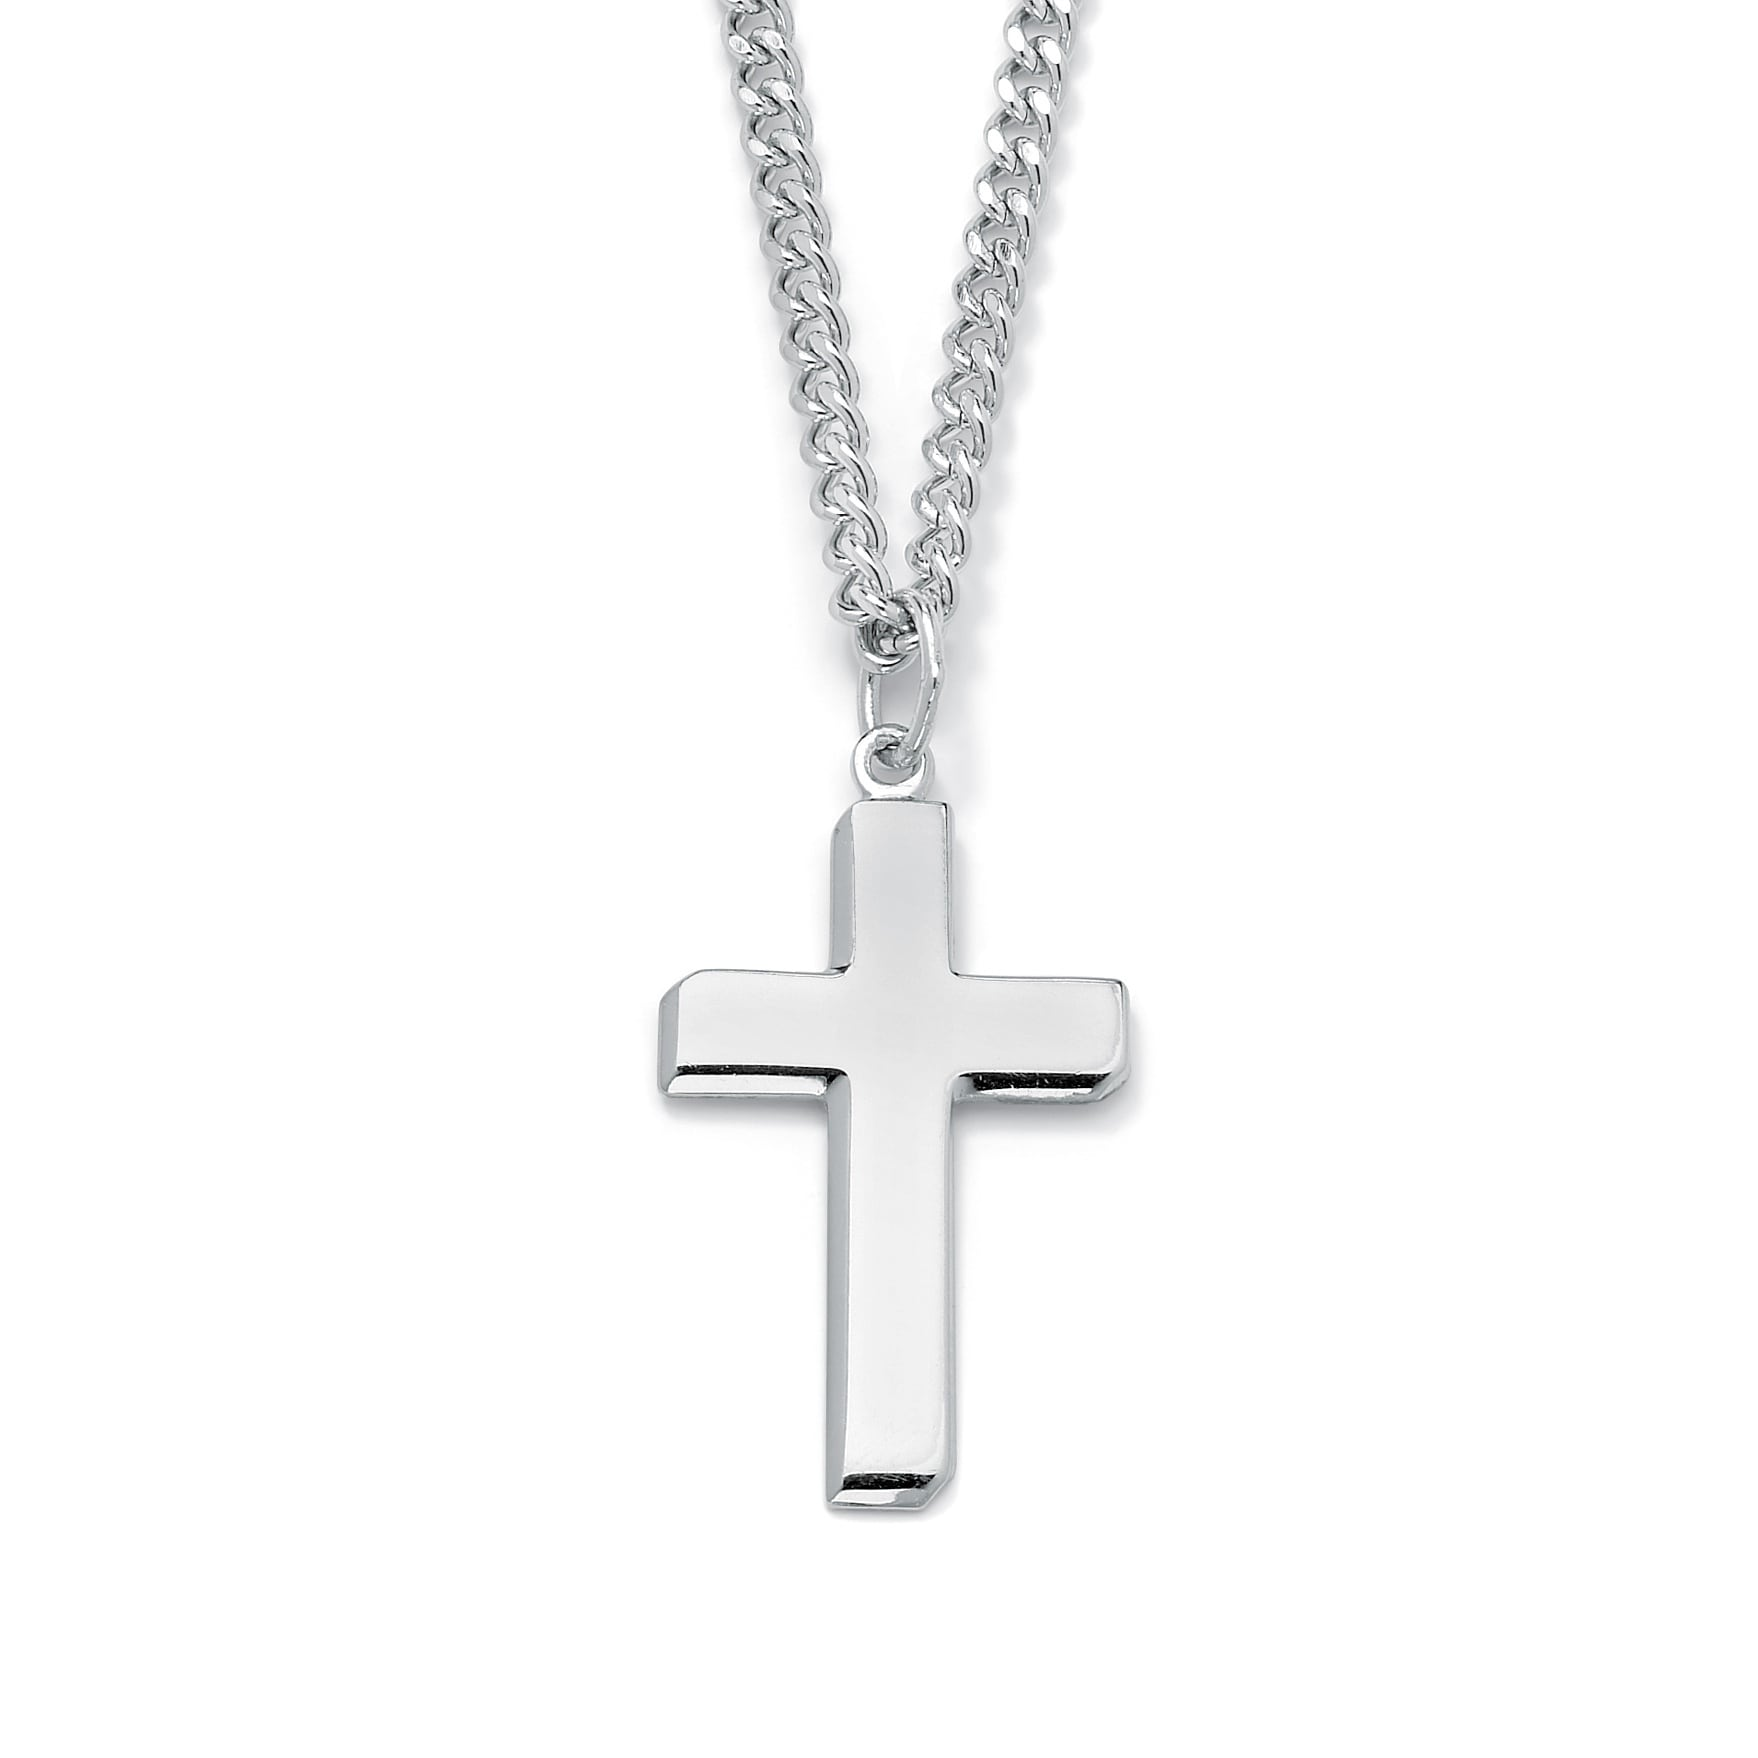 Shop sterling silver mens cross pendant necklace free shipping shop sterling silver mens cross pendant necklace free shipping today overstock 10951313 aloadofball Choice Image